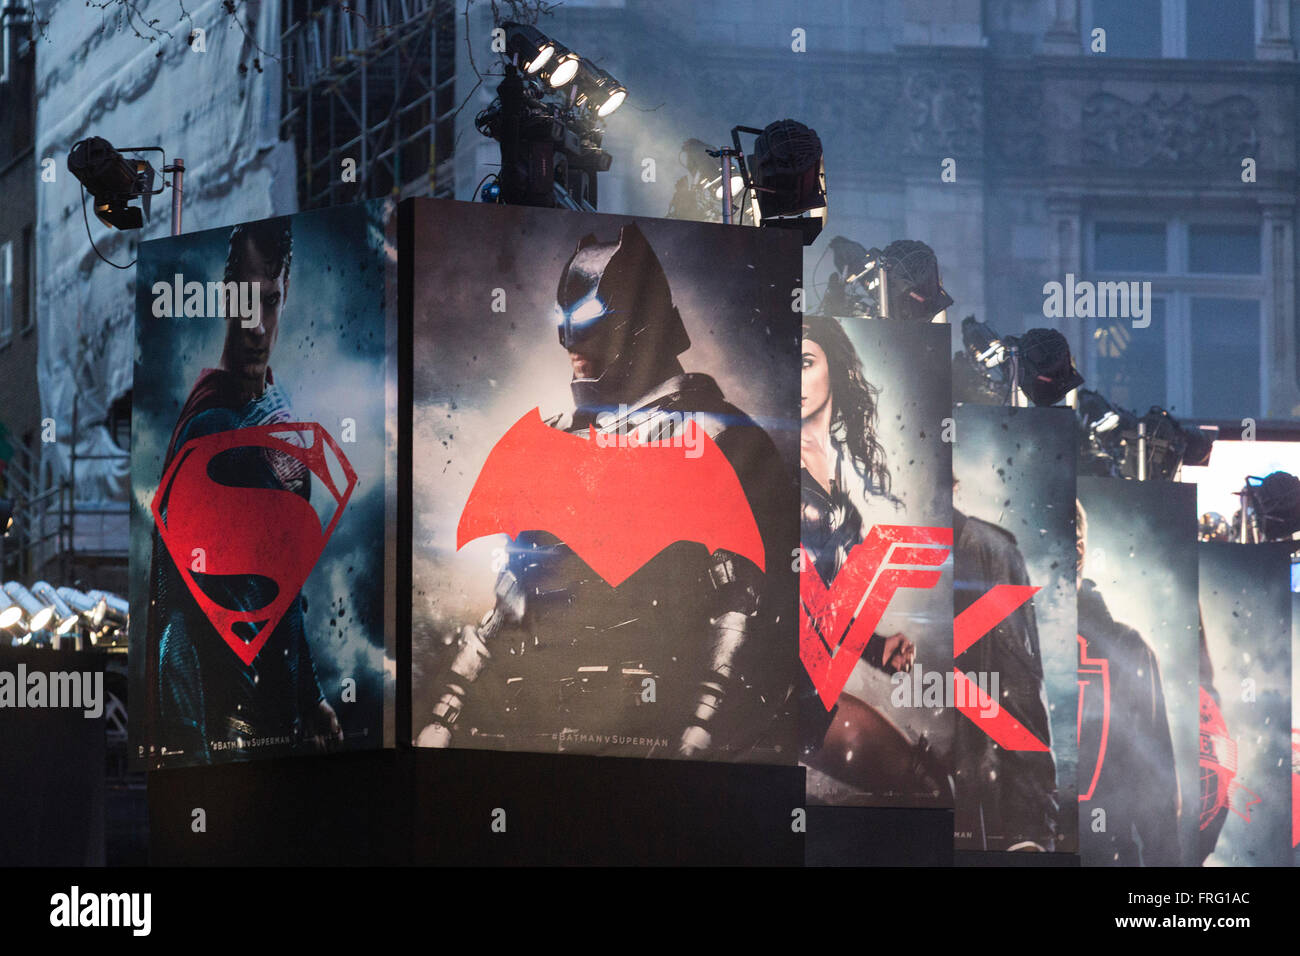 London, UK. 22 March 2016. Warner Bros. Pictures presents the European Premiere of Batman v Superman, Dawn of Justice. - Stock Image